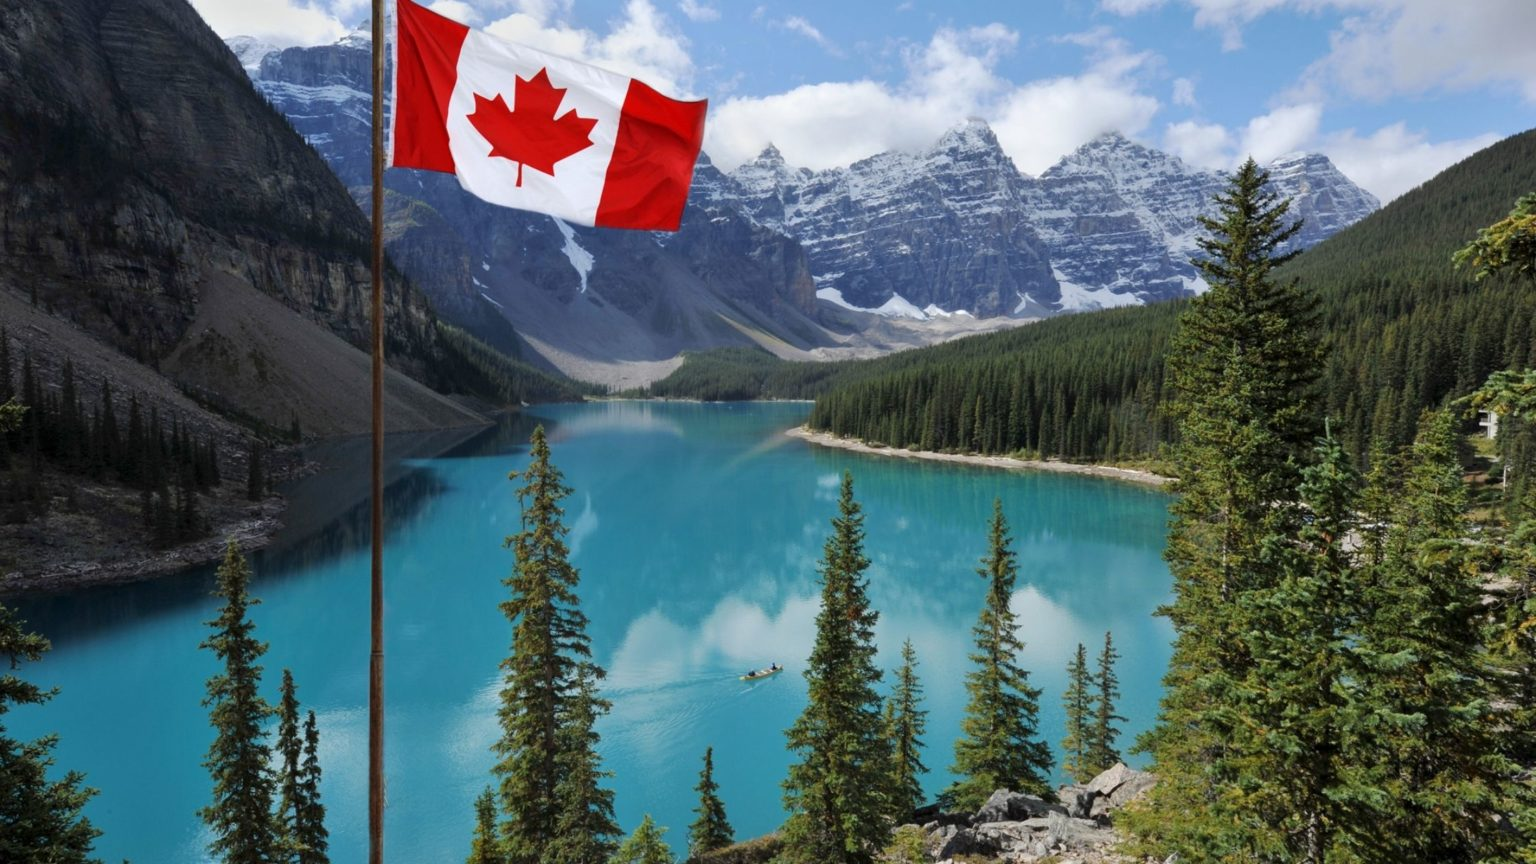 Do you need a Passport to go to Canada from the U.S.?